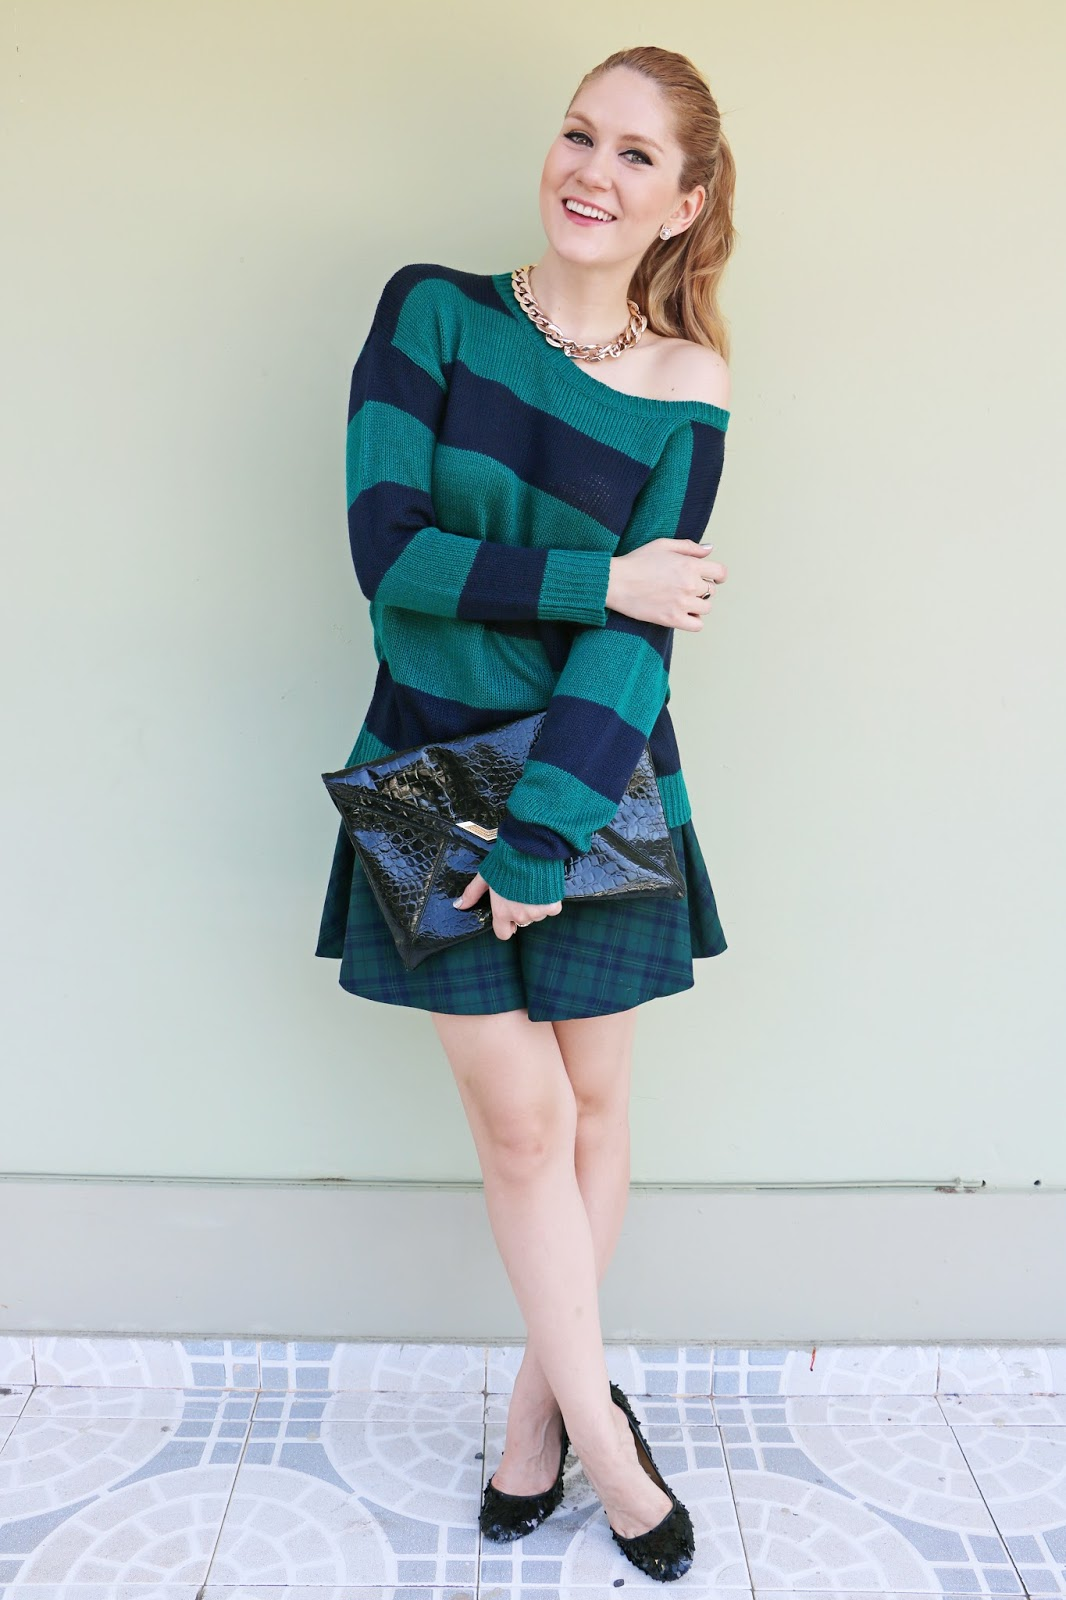 Cute plaid outfit for Fall!